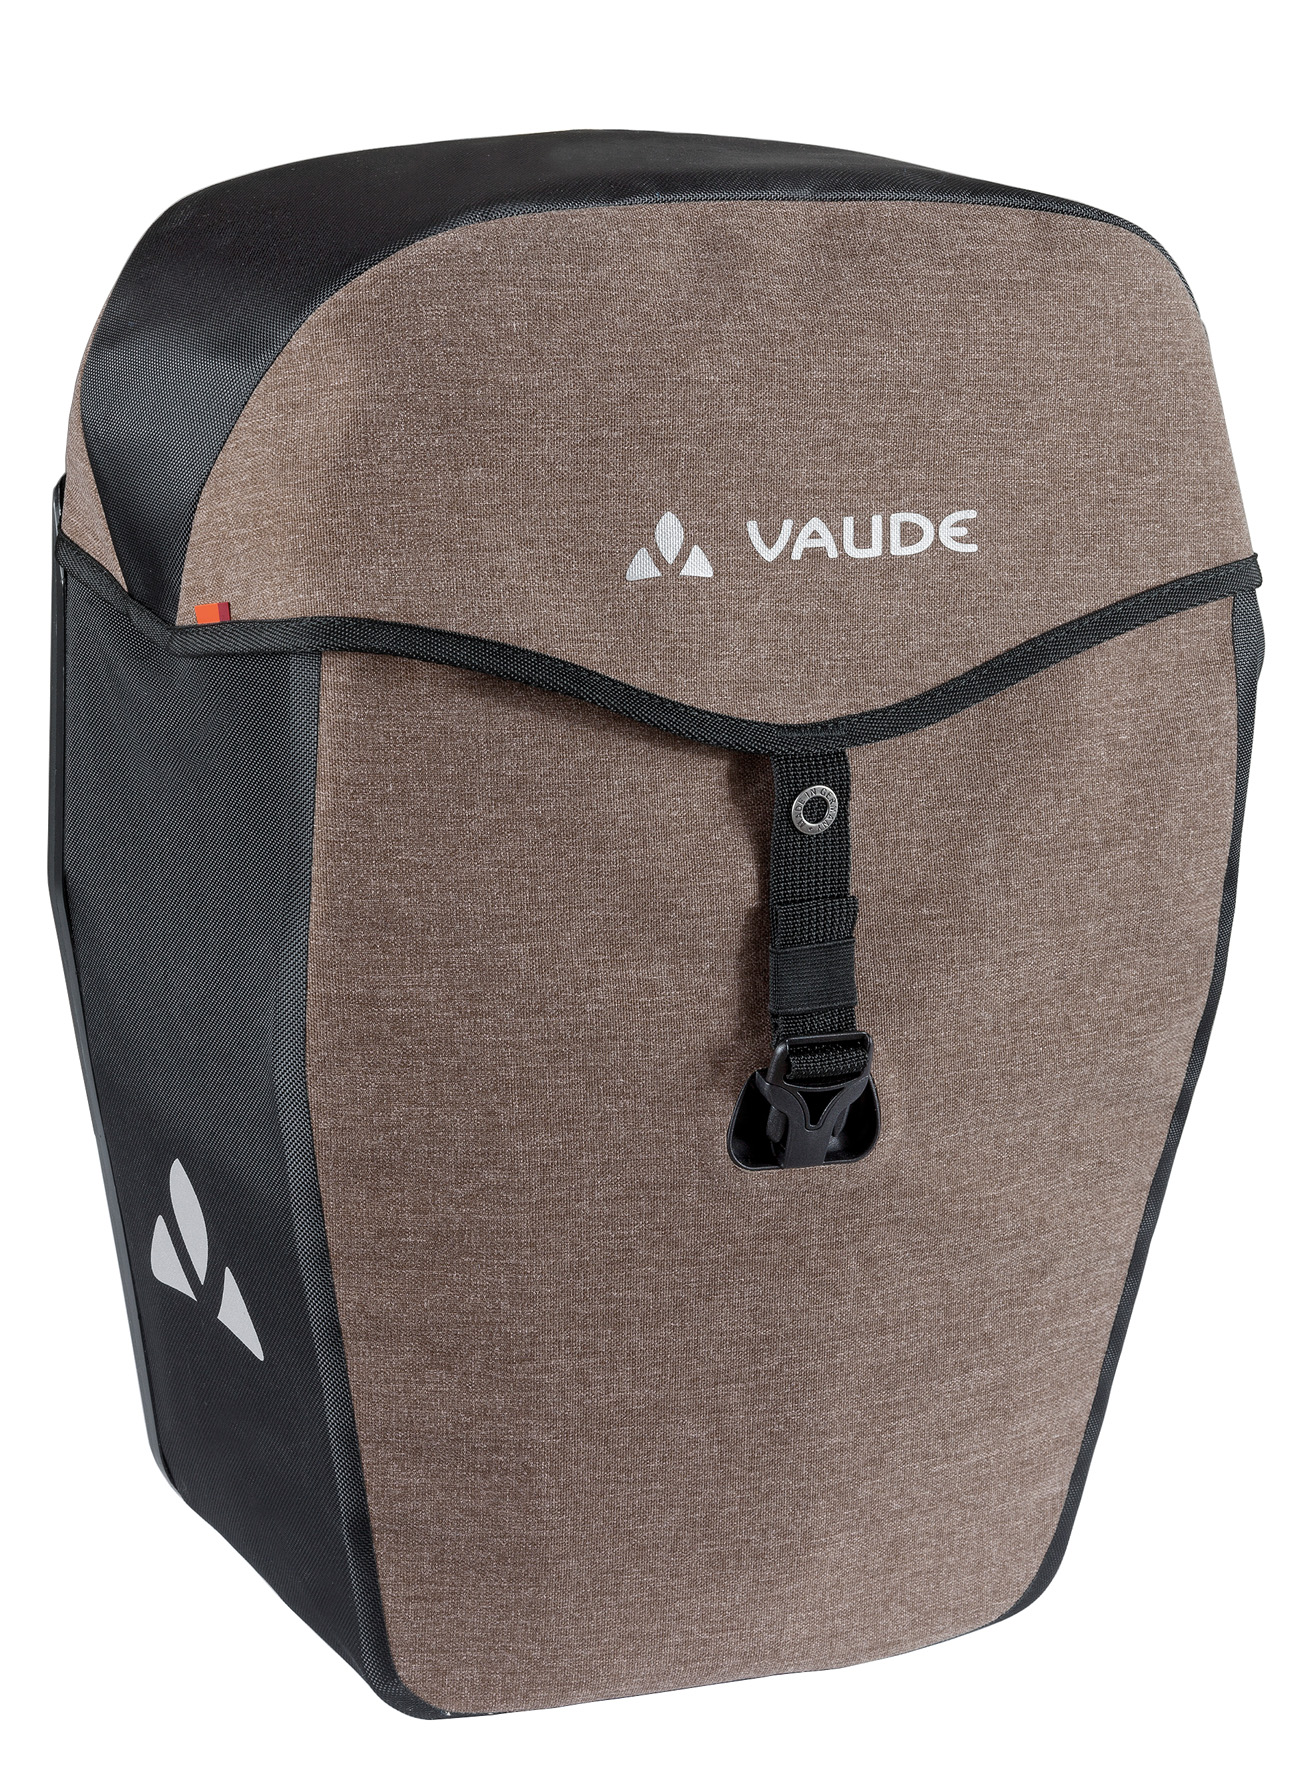 VAUDE Aqua Deluxe Pro wood/black  - schneider-sports